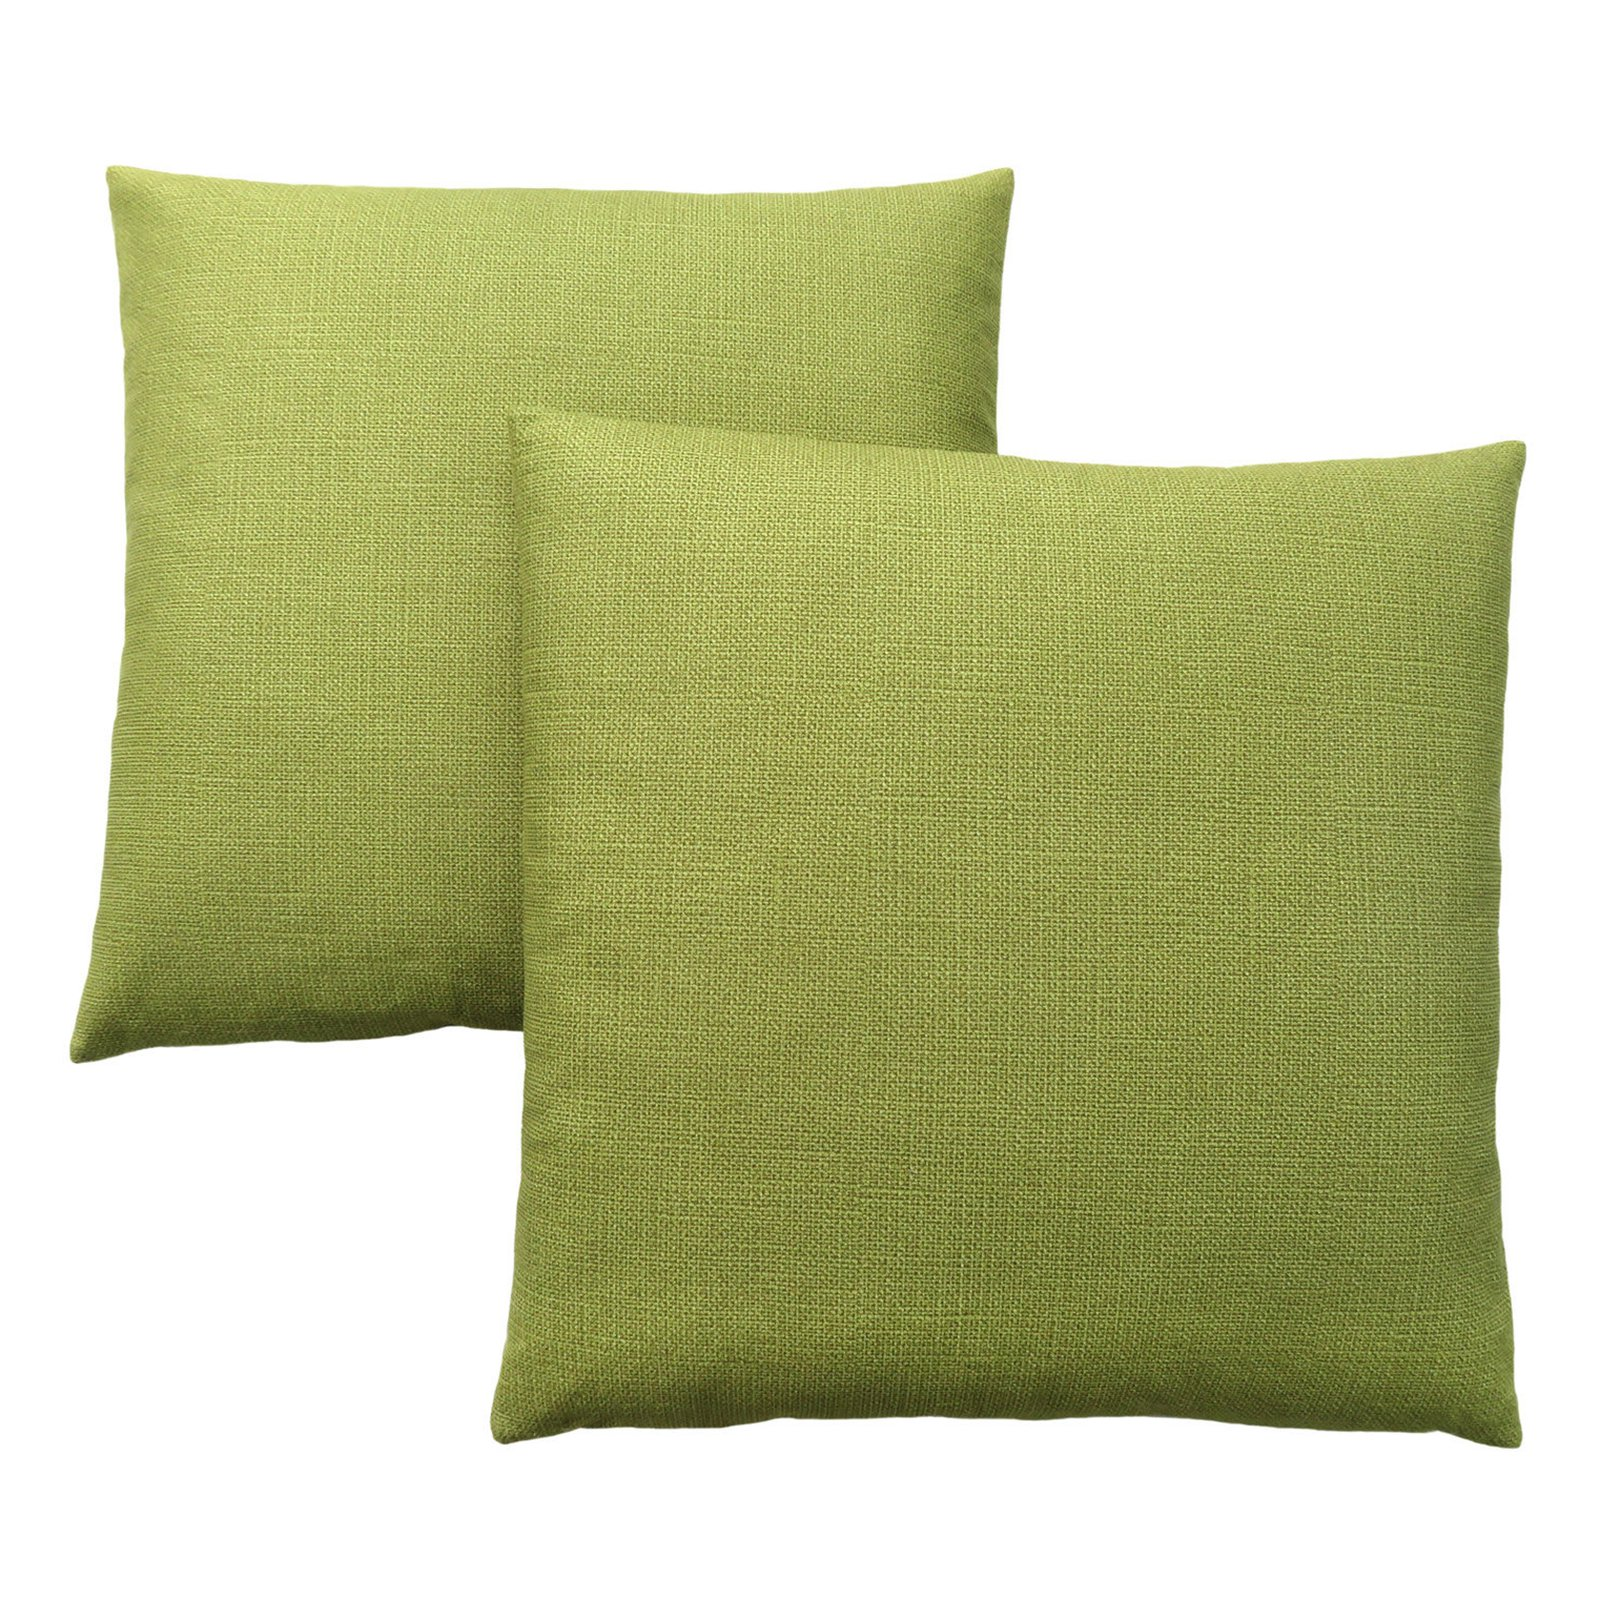 Monarch Specialties Patterned Decorative Pillow Set of 2 by Monarch Specialties